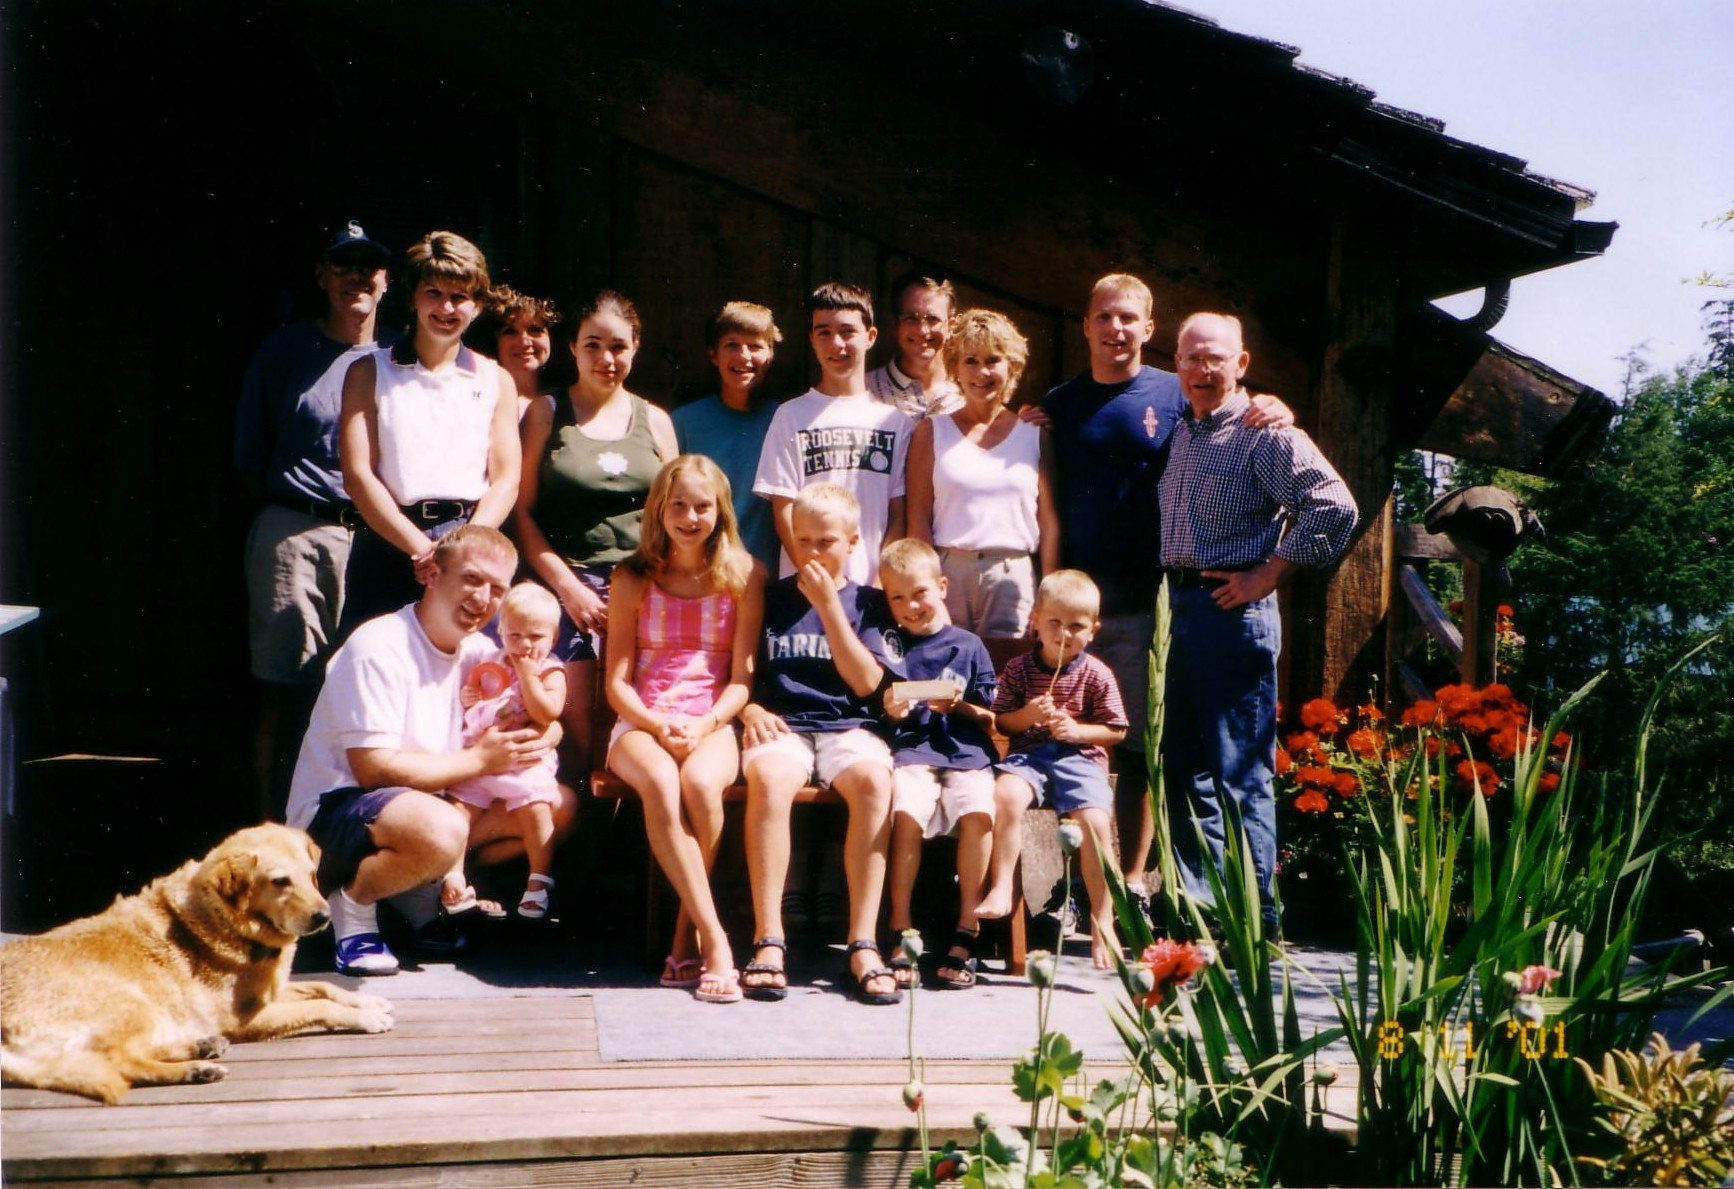 McNae Family Reunion (2001)